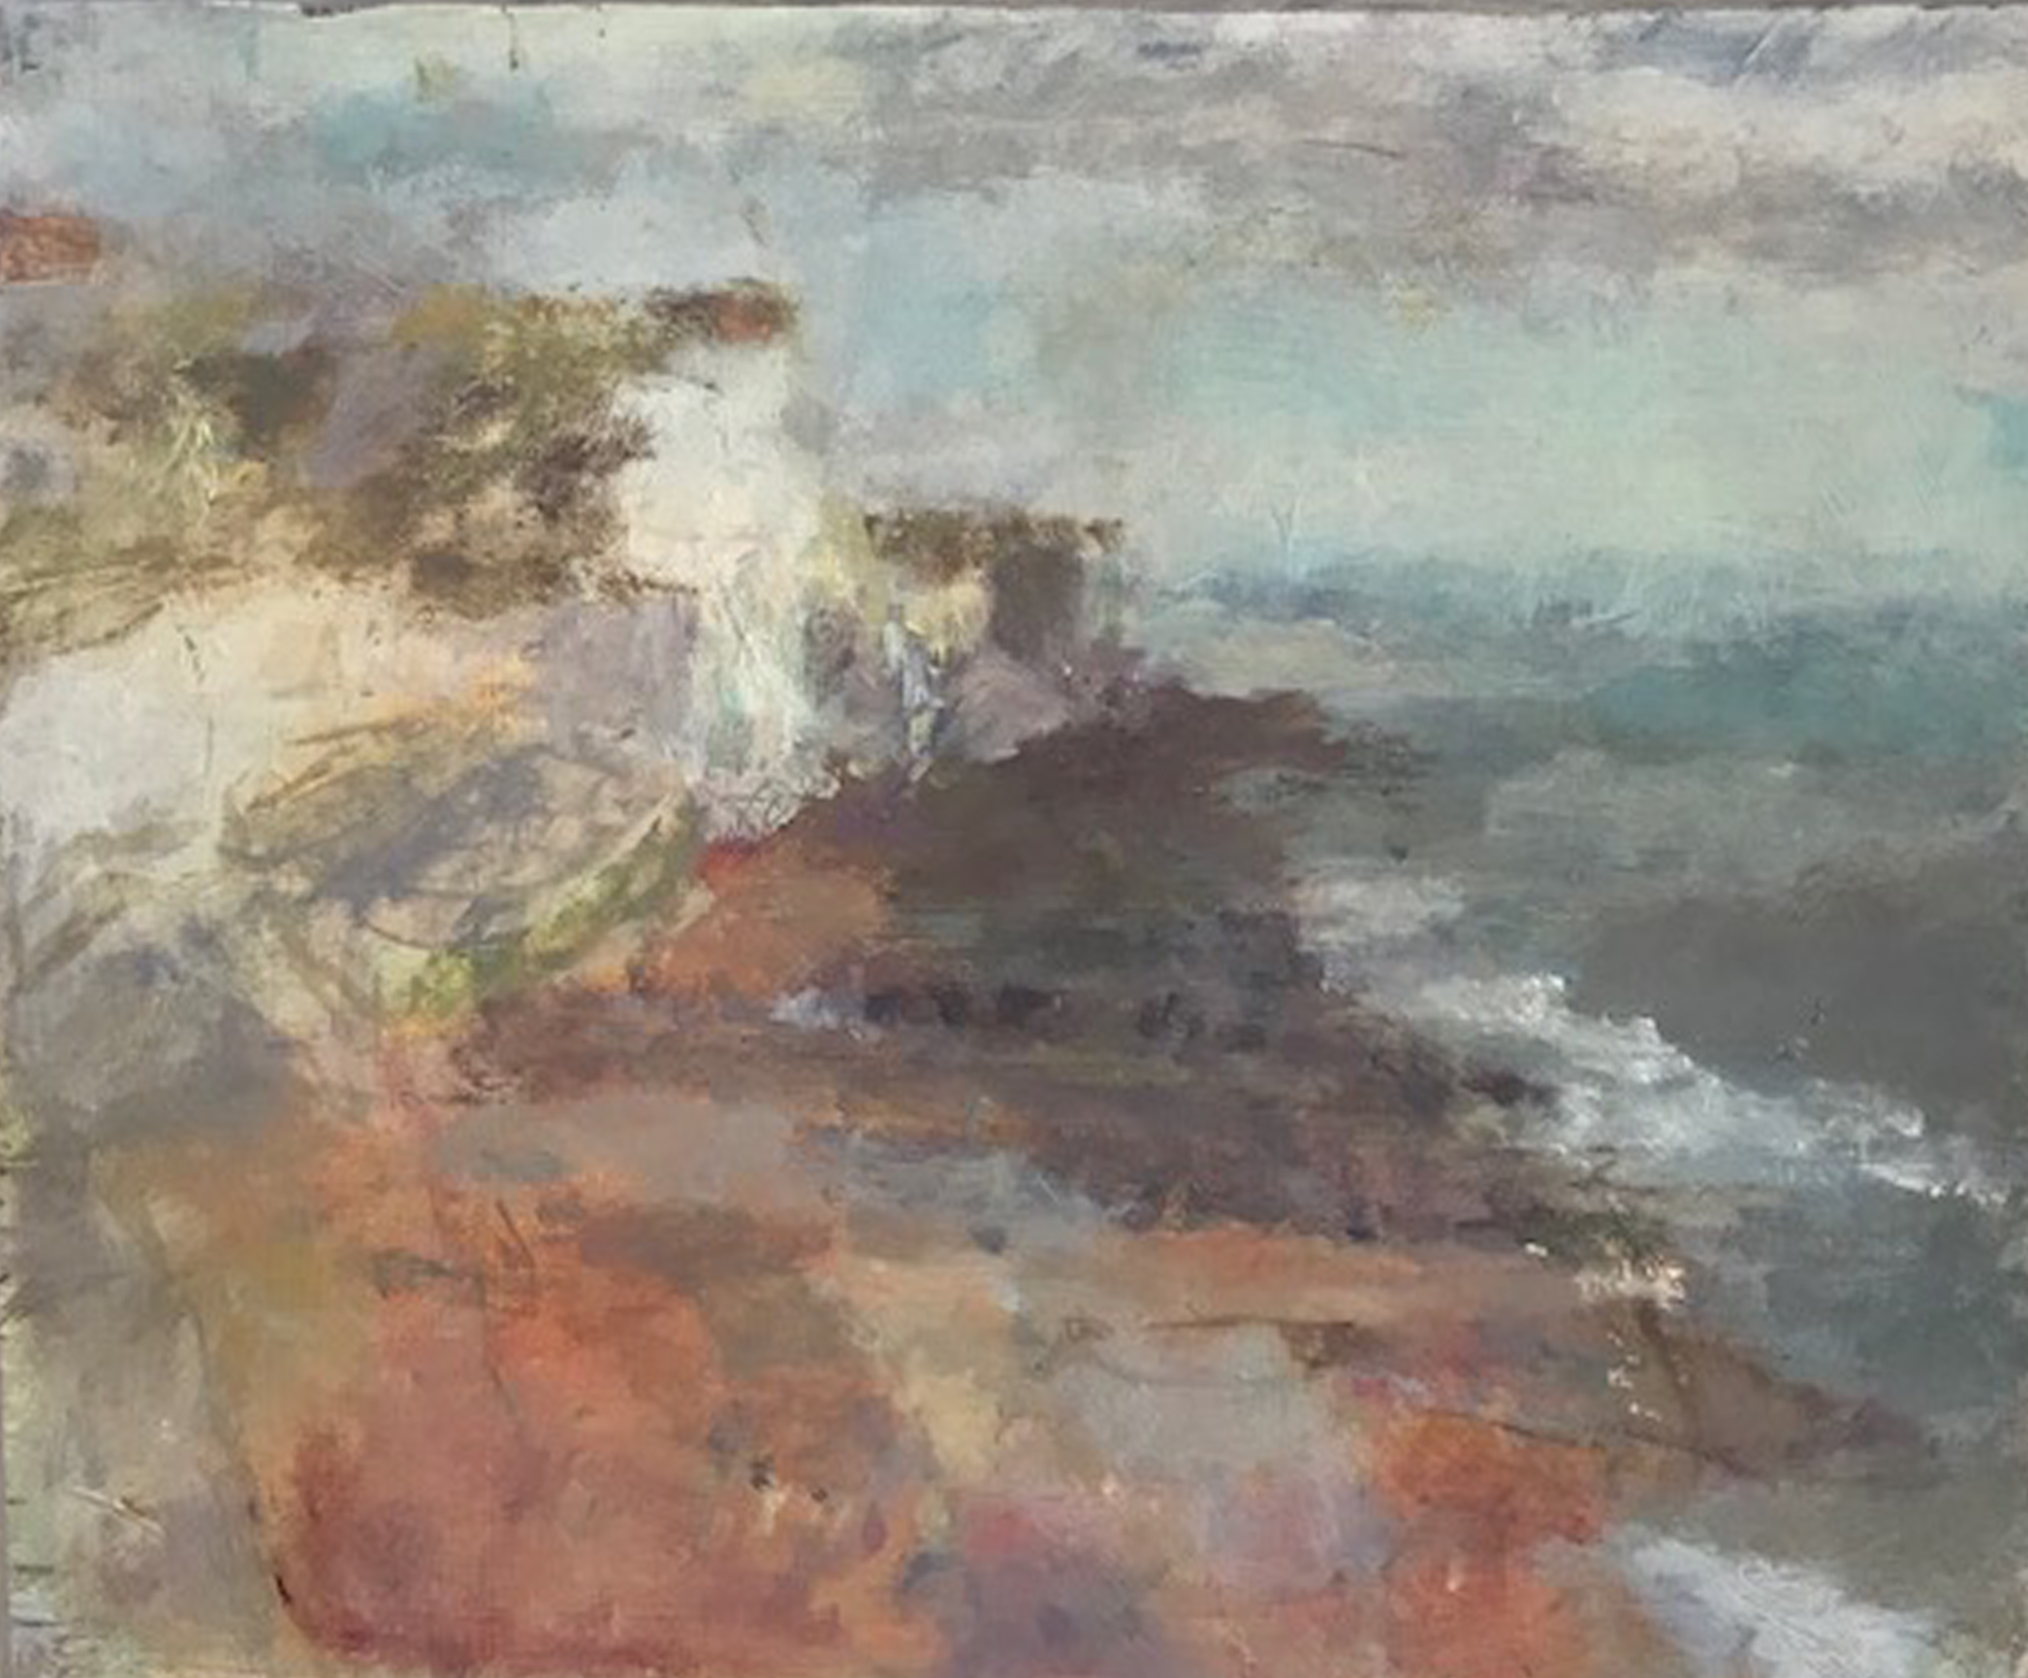 Artist: Anja Niedring  Title: Saltdean, Light Out  Size: 19.5 x 25.5 cm  Medium: Oil on board  Price: £395